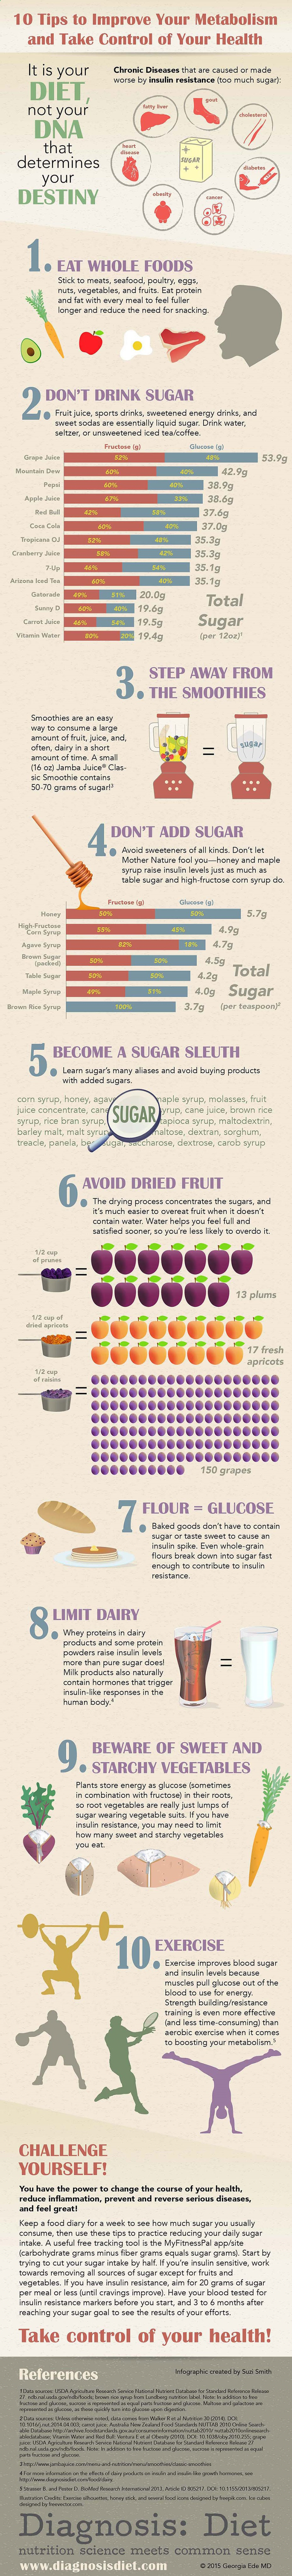 infographic with 10 tips to cut your sugar intake, boost your metabolism and improve insulin resistance